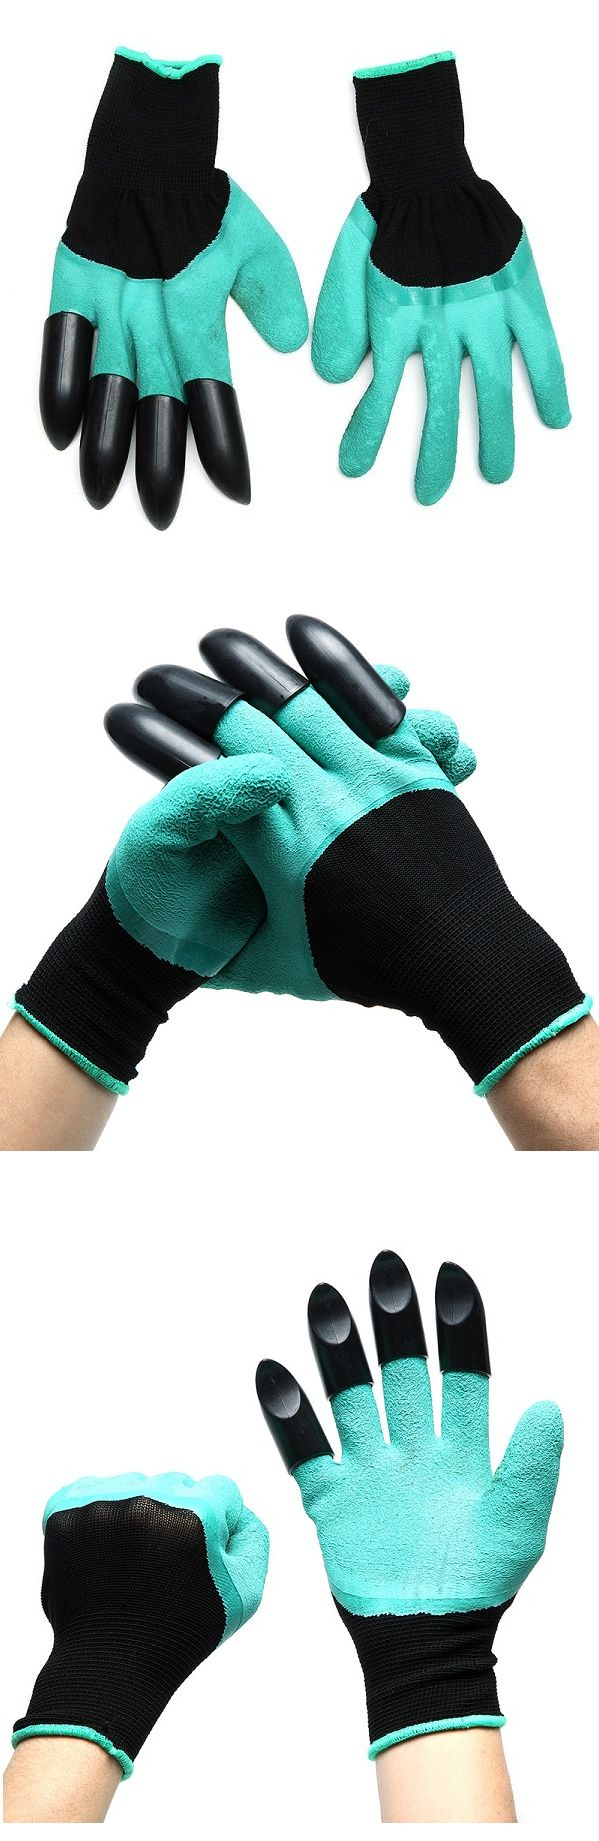 Leather work gloves ireland - Us 4 69 1pair Gardening Digging Gloves Planting Rubber Polyester Safety Work Gloves Builders Grip Gloves